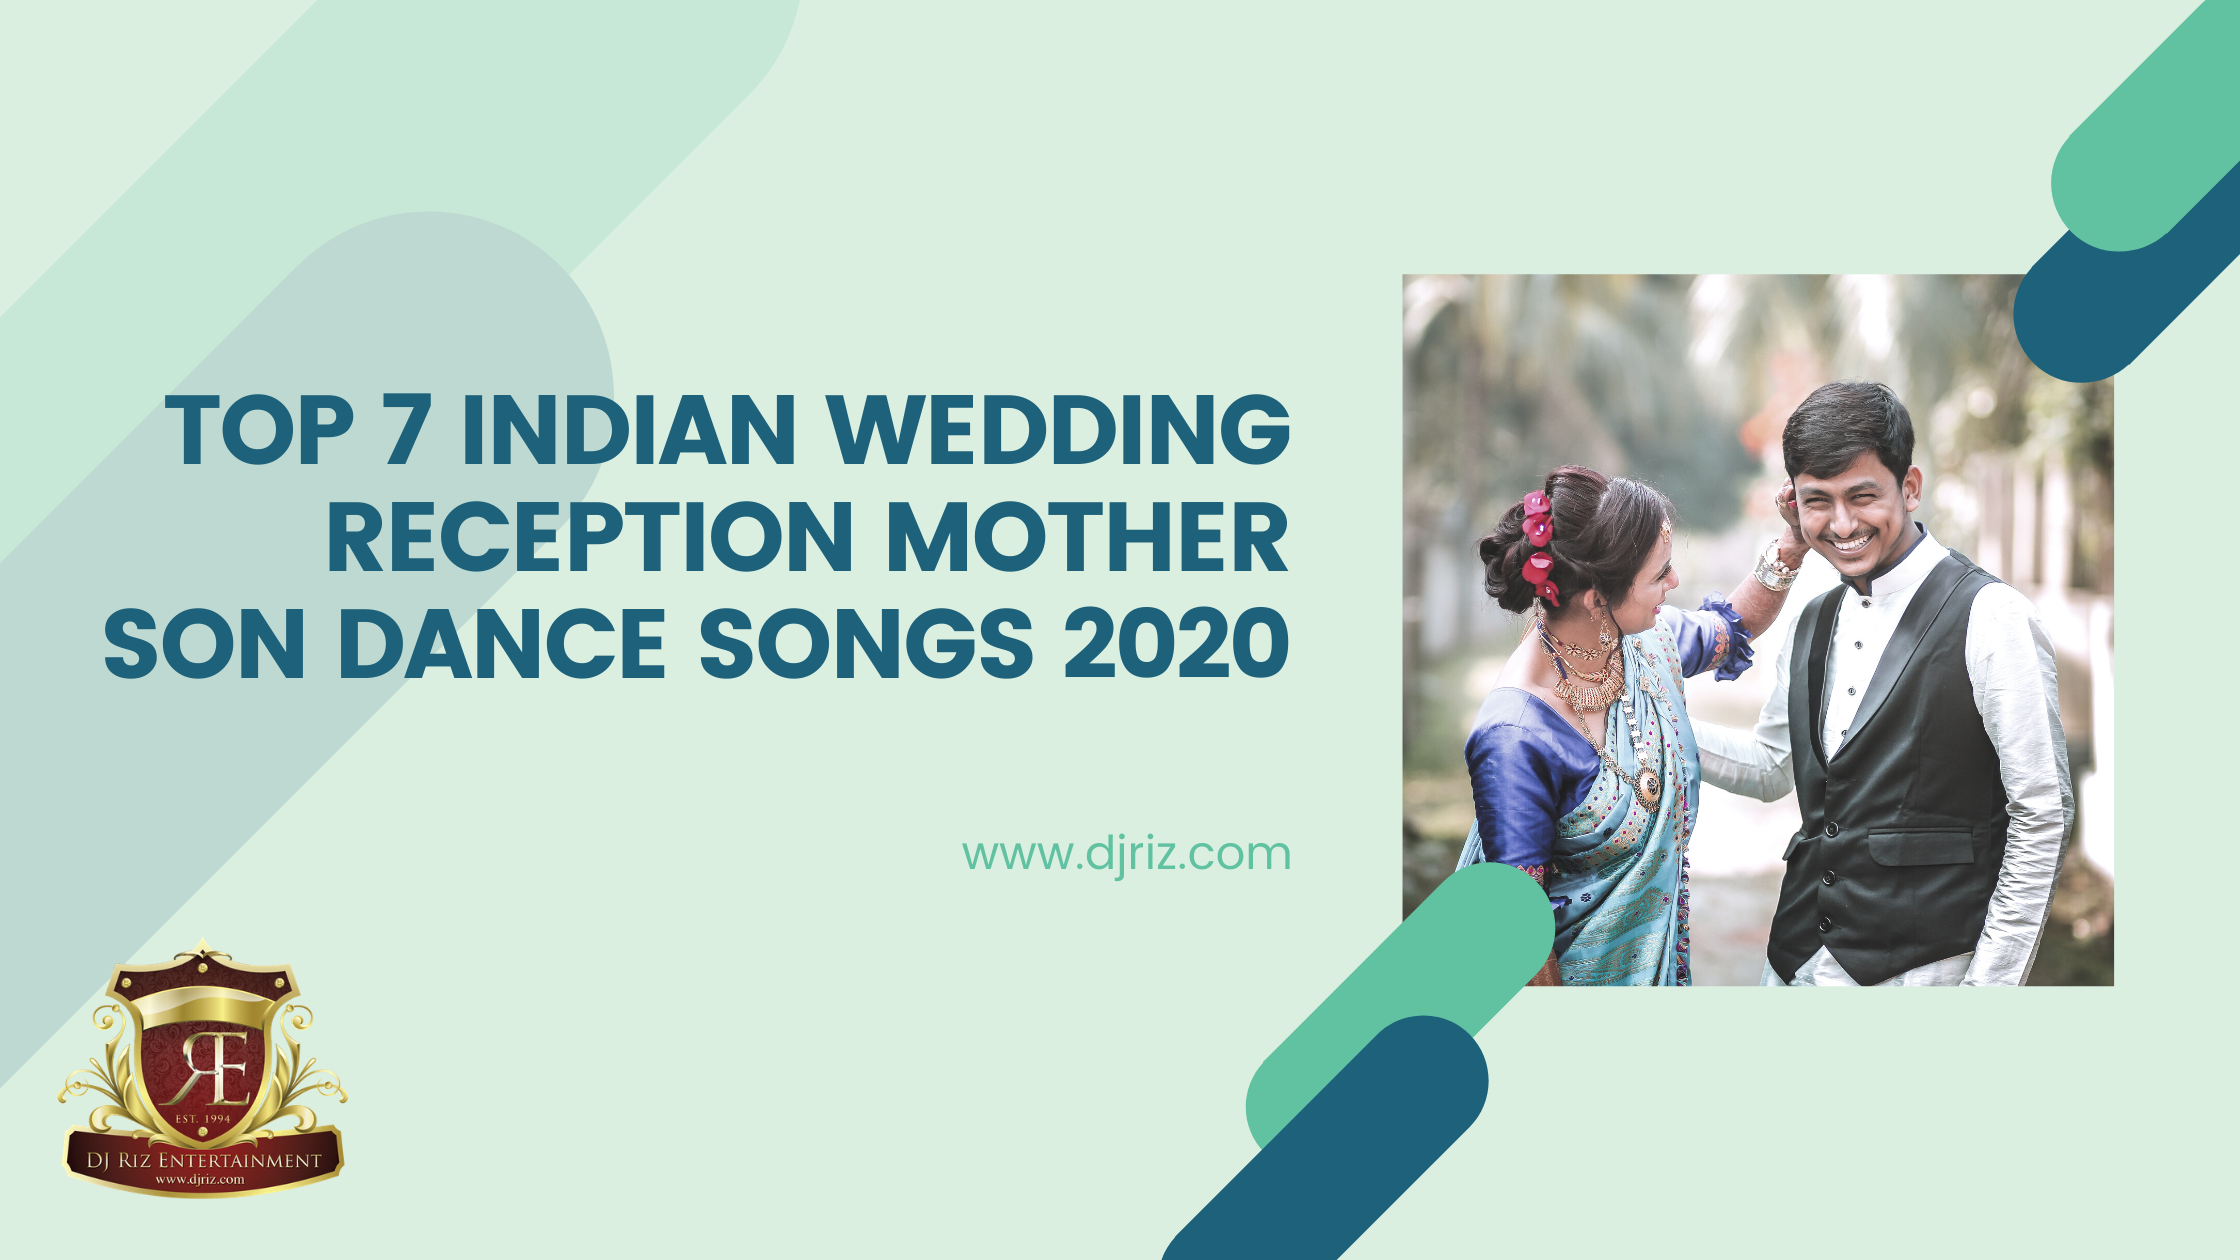 Indian Wedding Reception Mother Son Dance Songs 2020